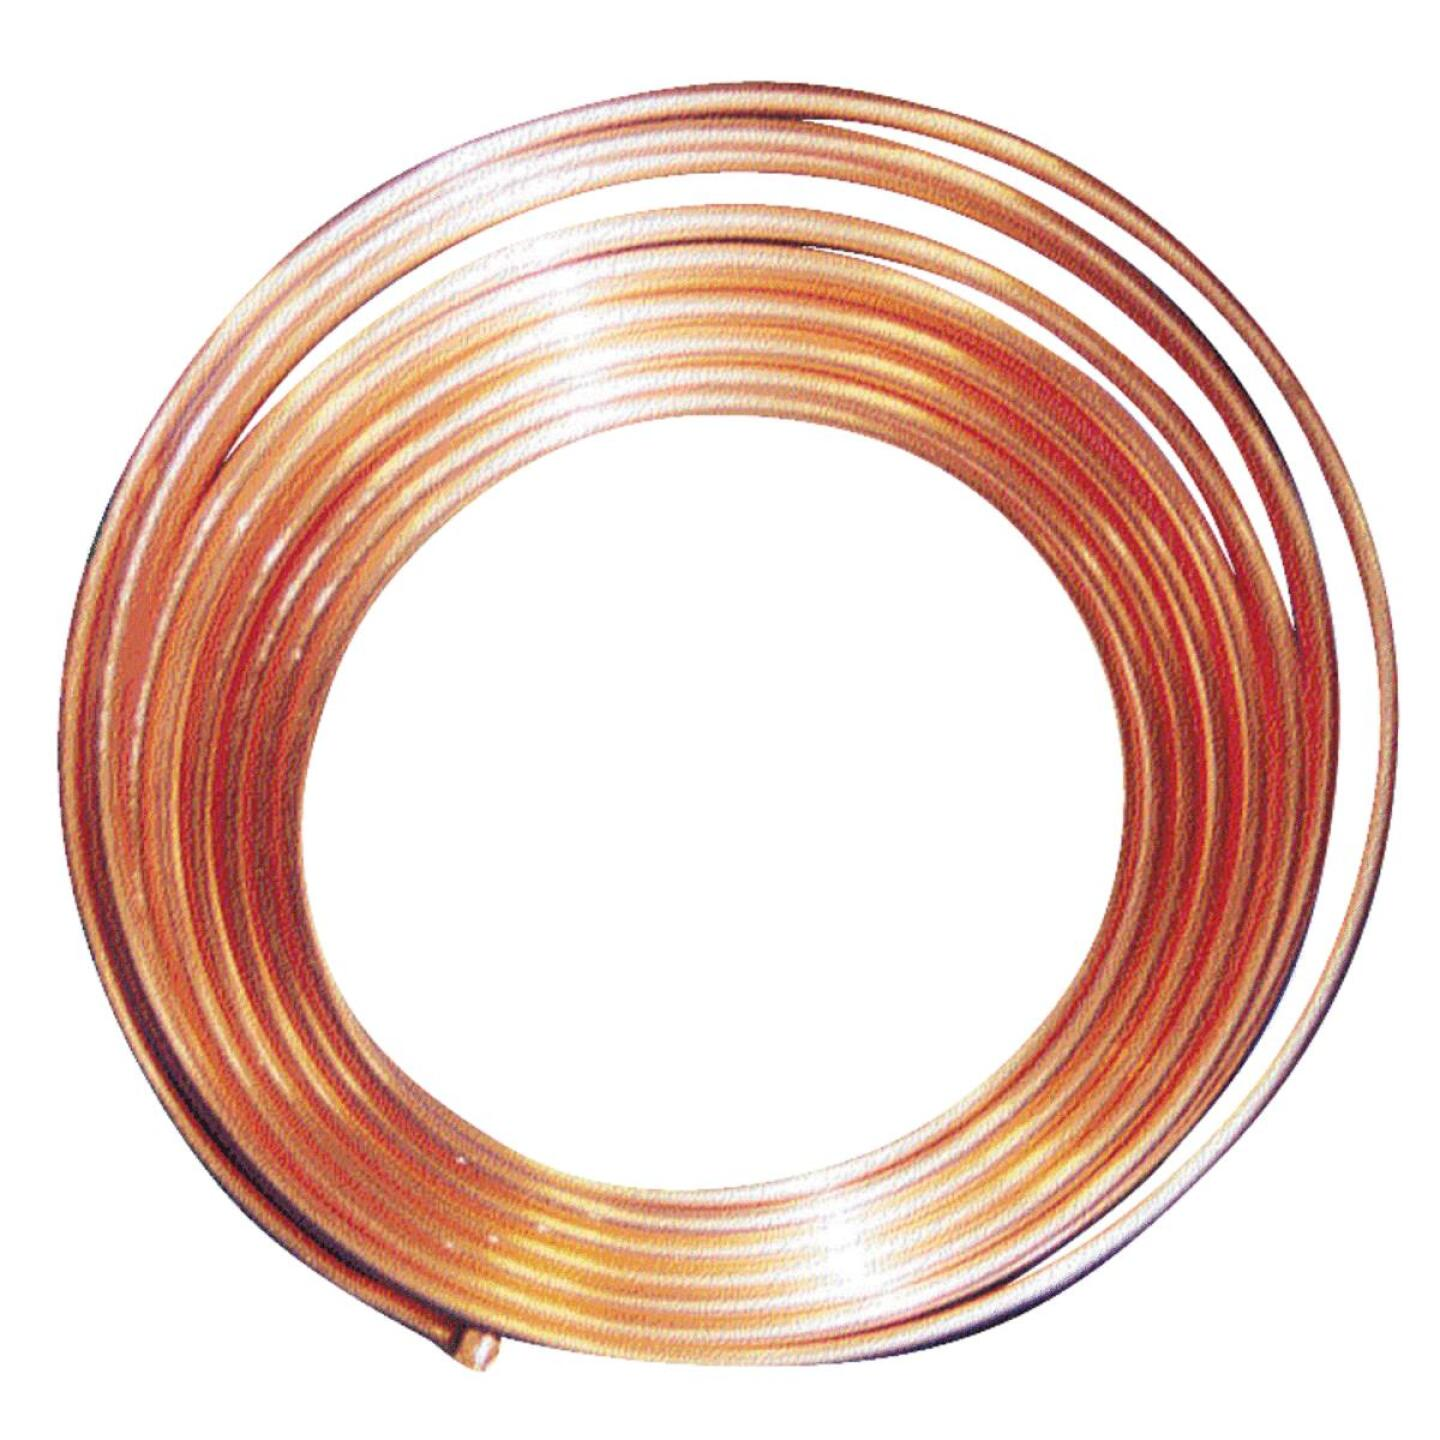 Mueller Streamline 1/2 In. ID x 20 Ft. Soft Coil Copper Tubing Image 1